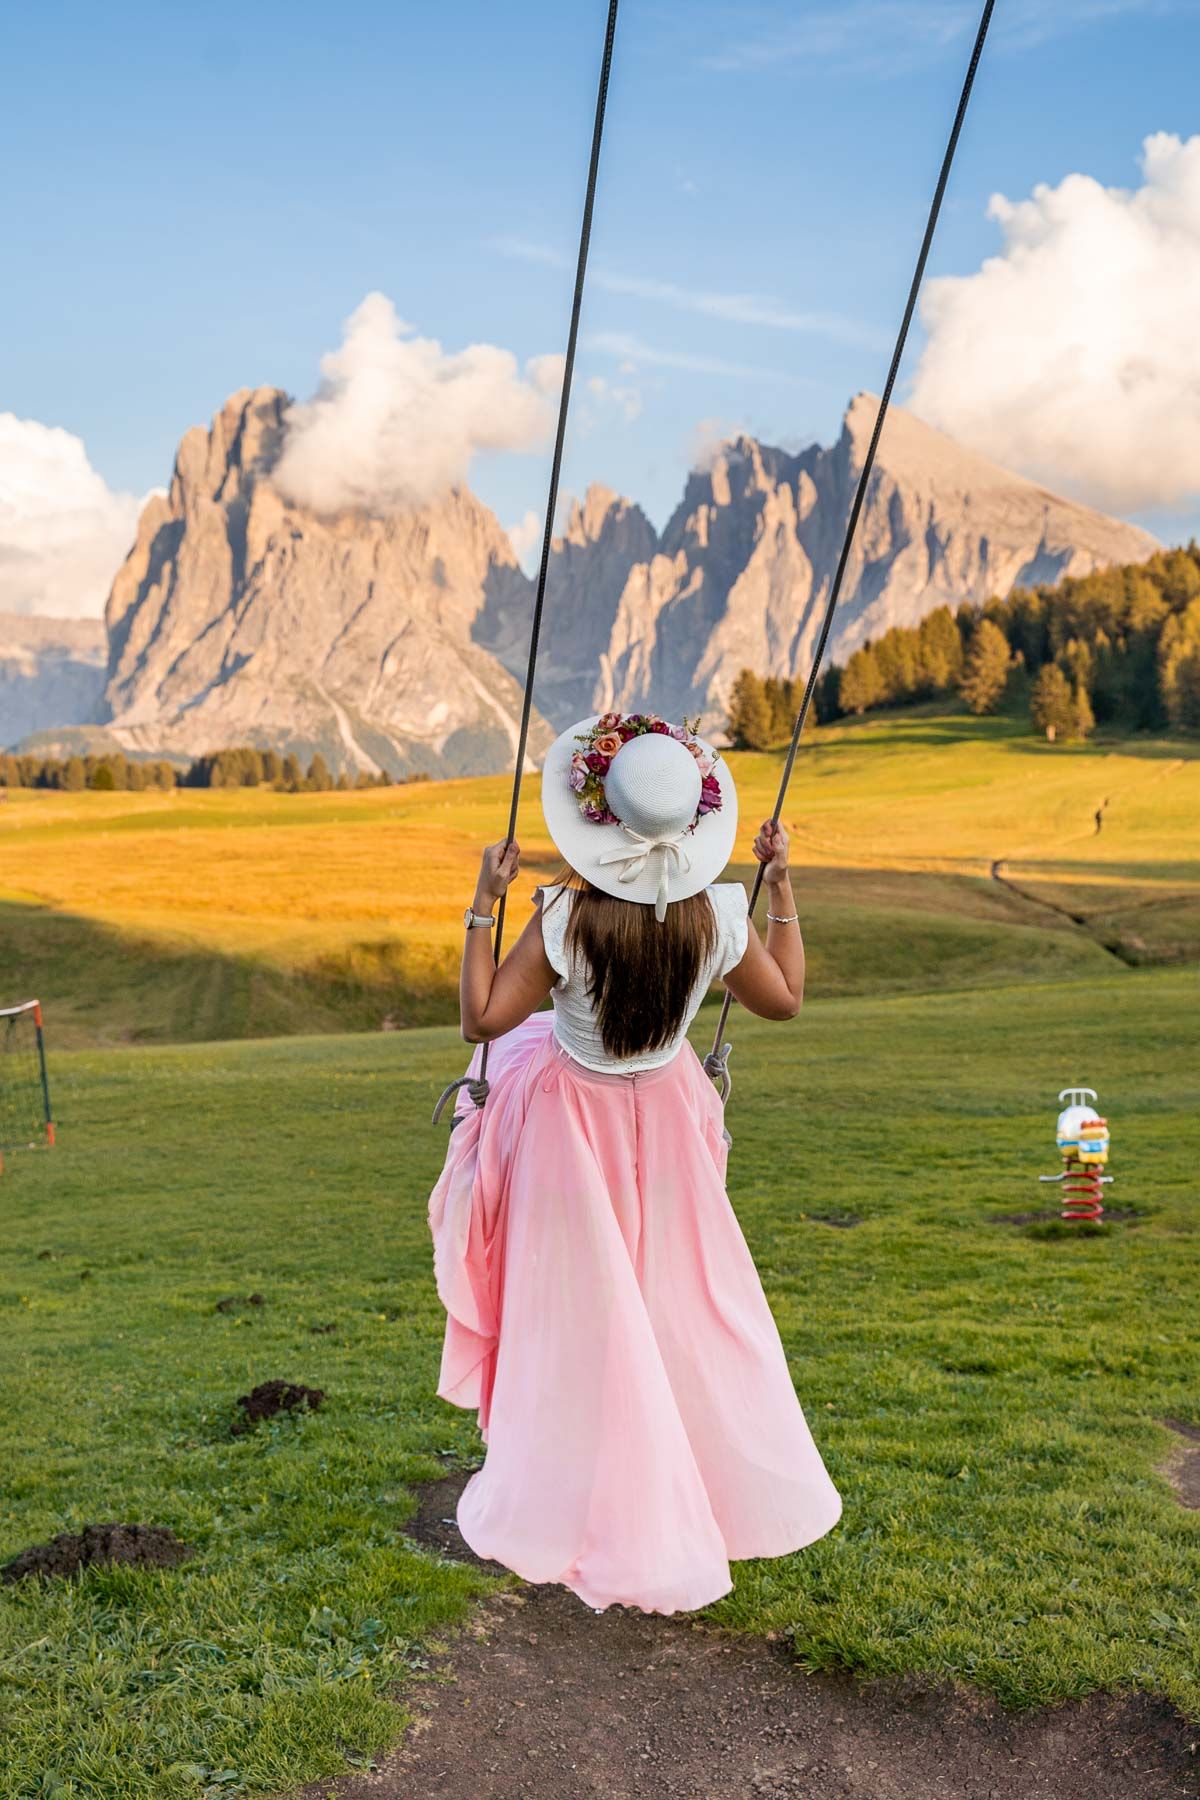 Girl in a pink skirt swinging at Alpe di Siusi in the Dolomites